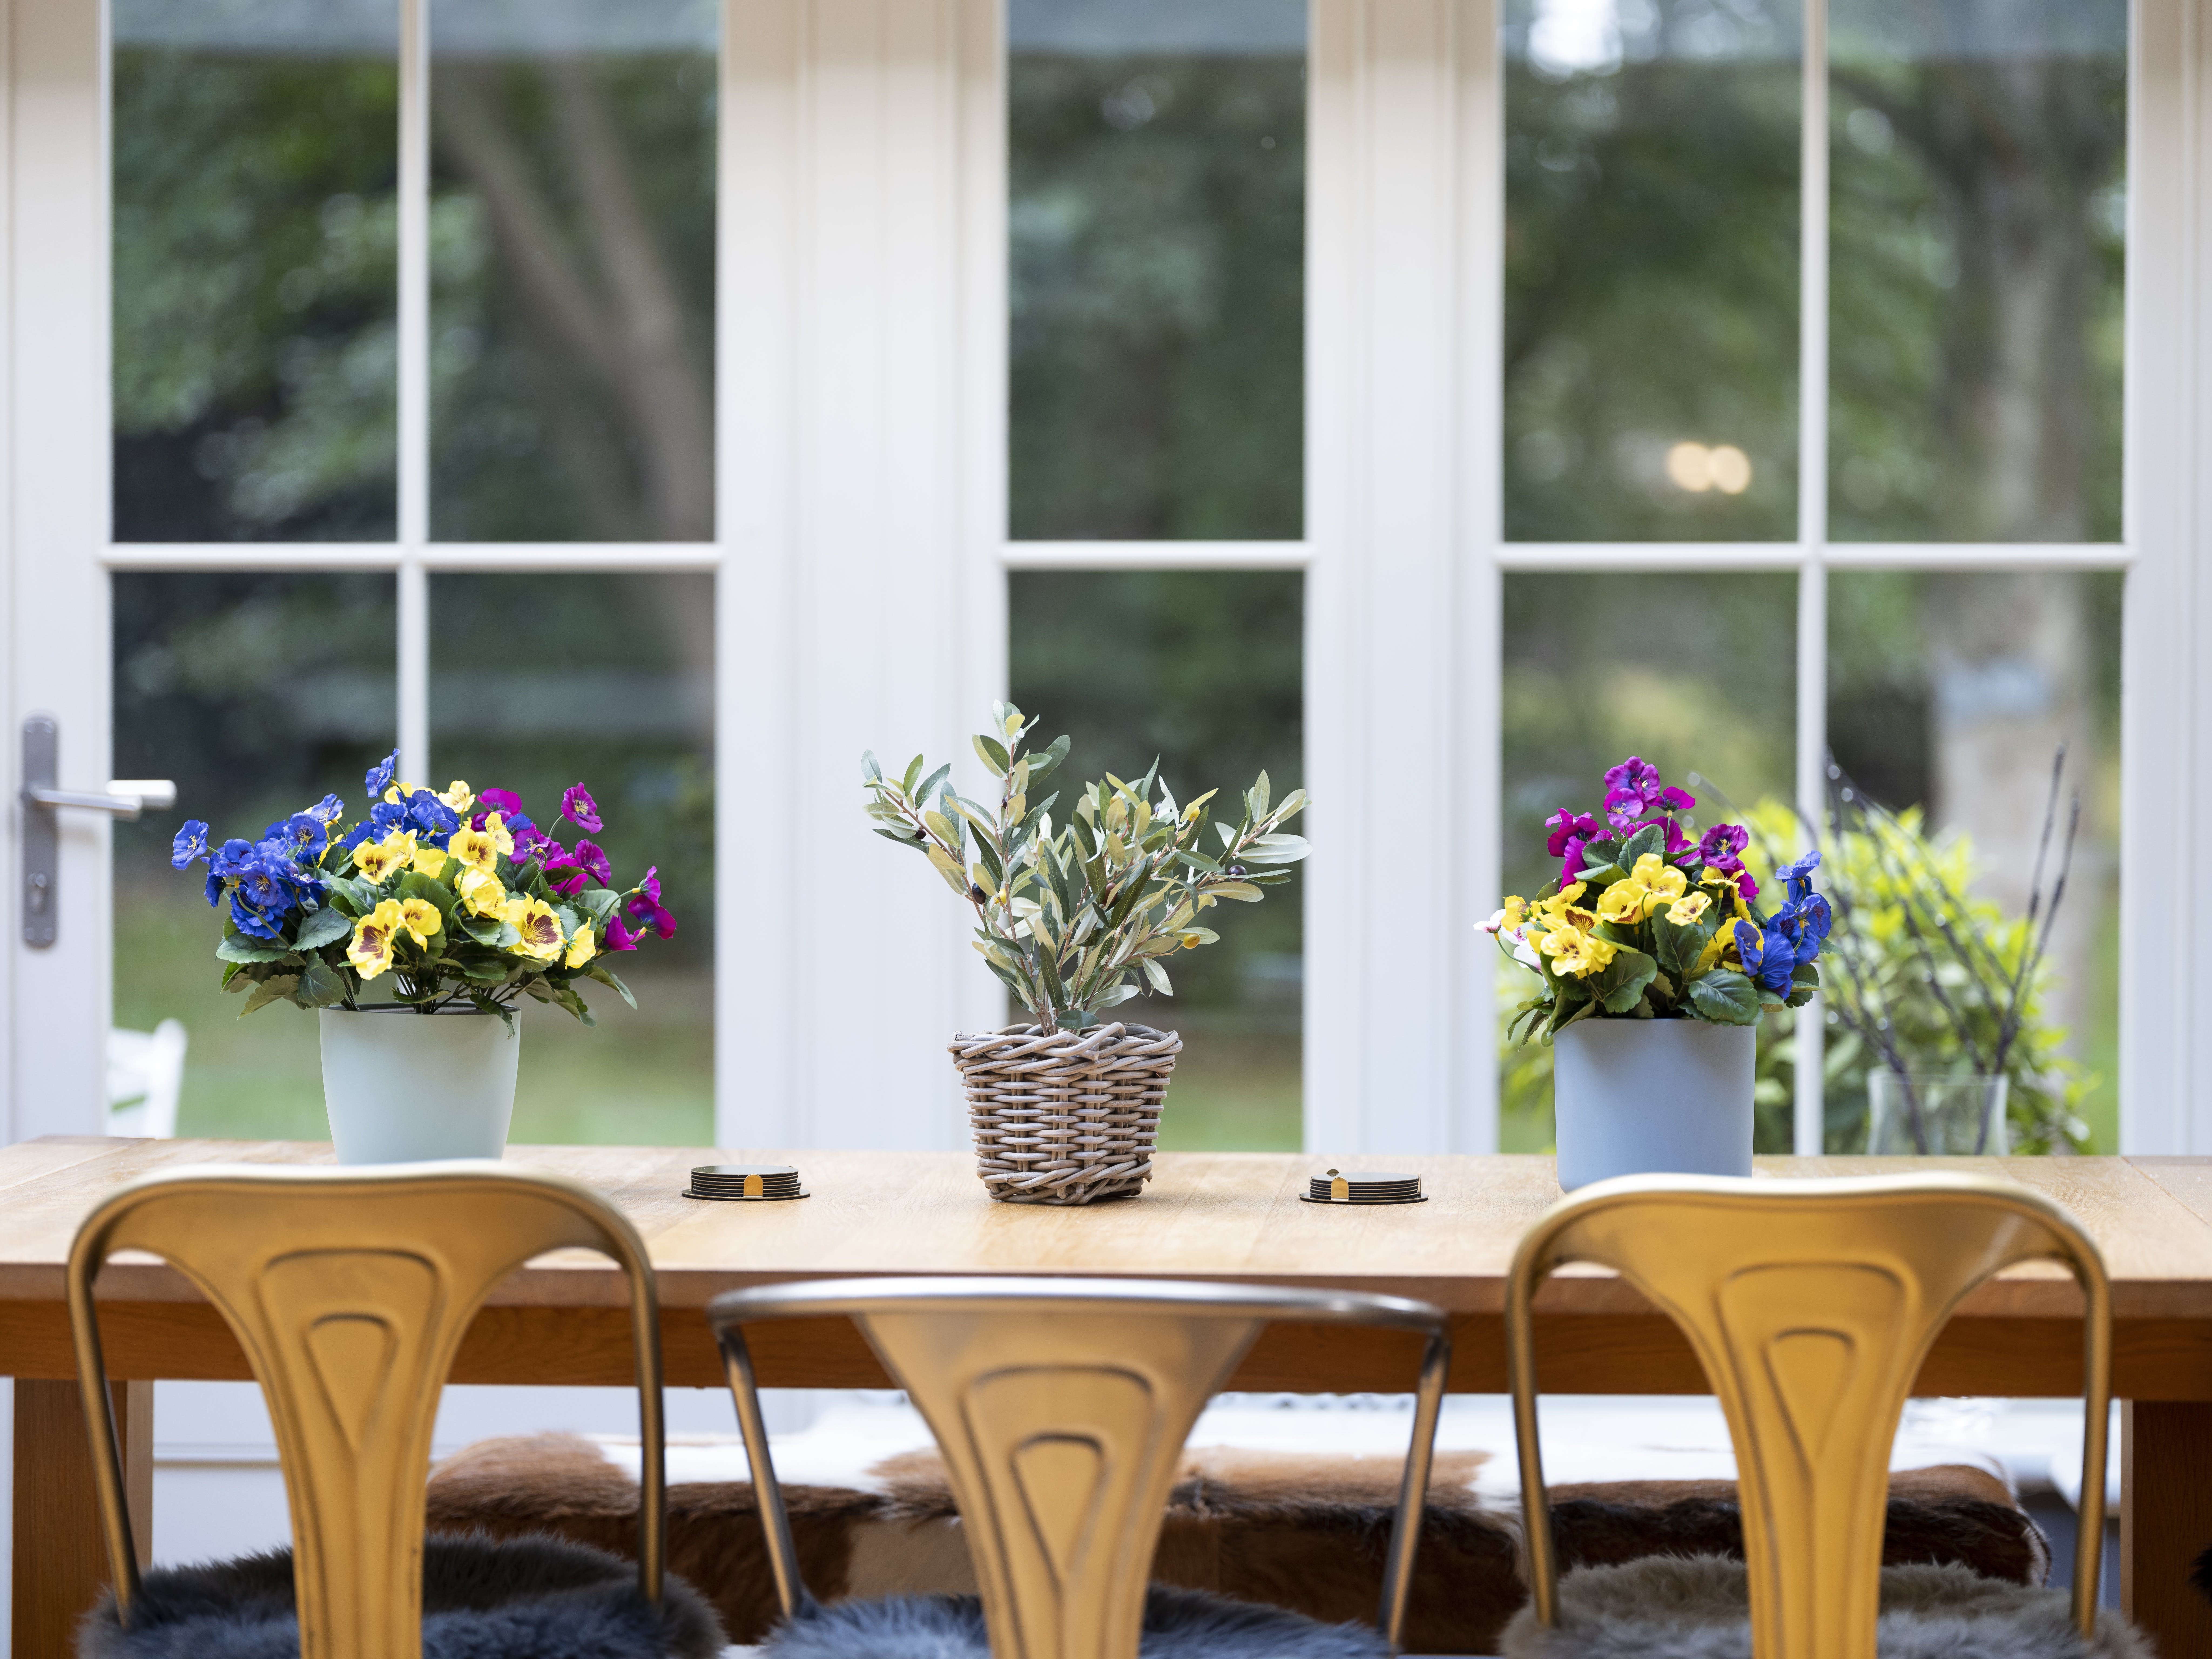 Artificial pansy bush arrangement on dining table